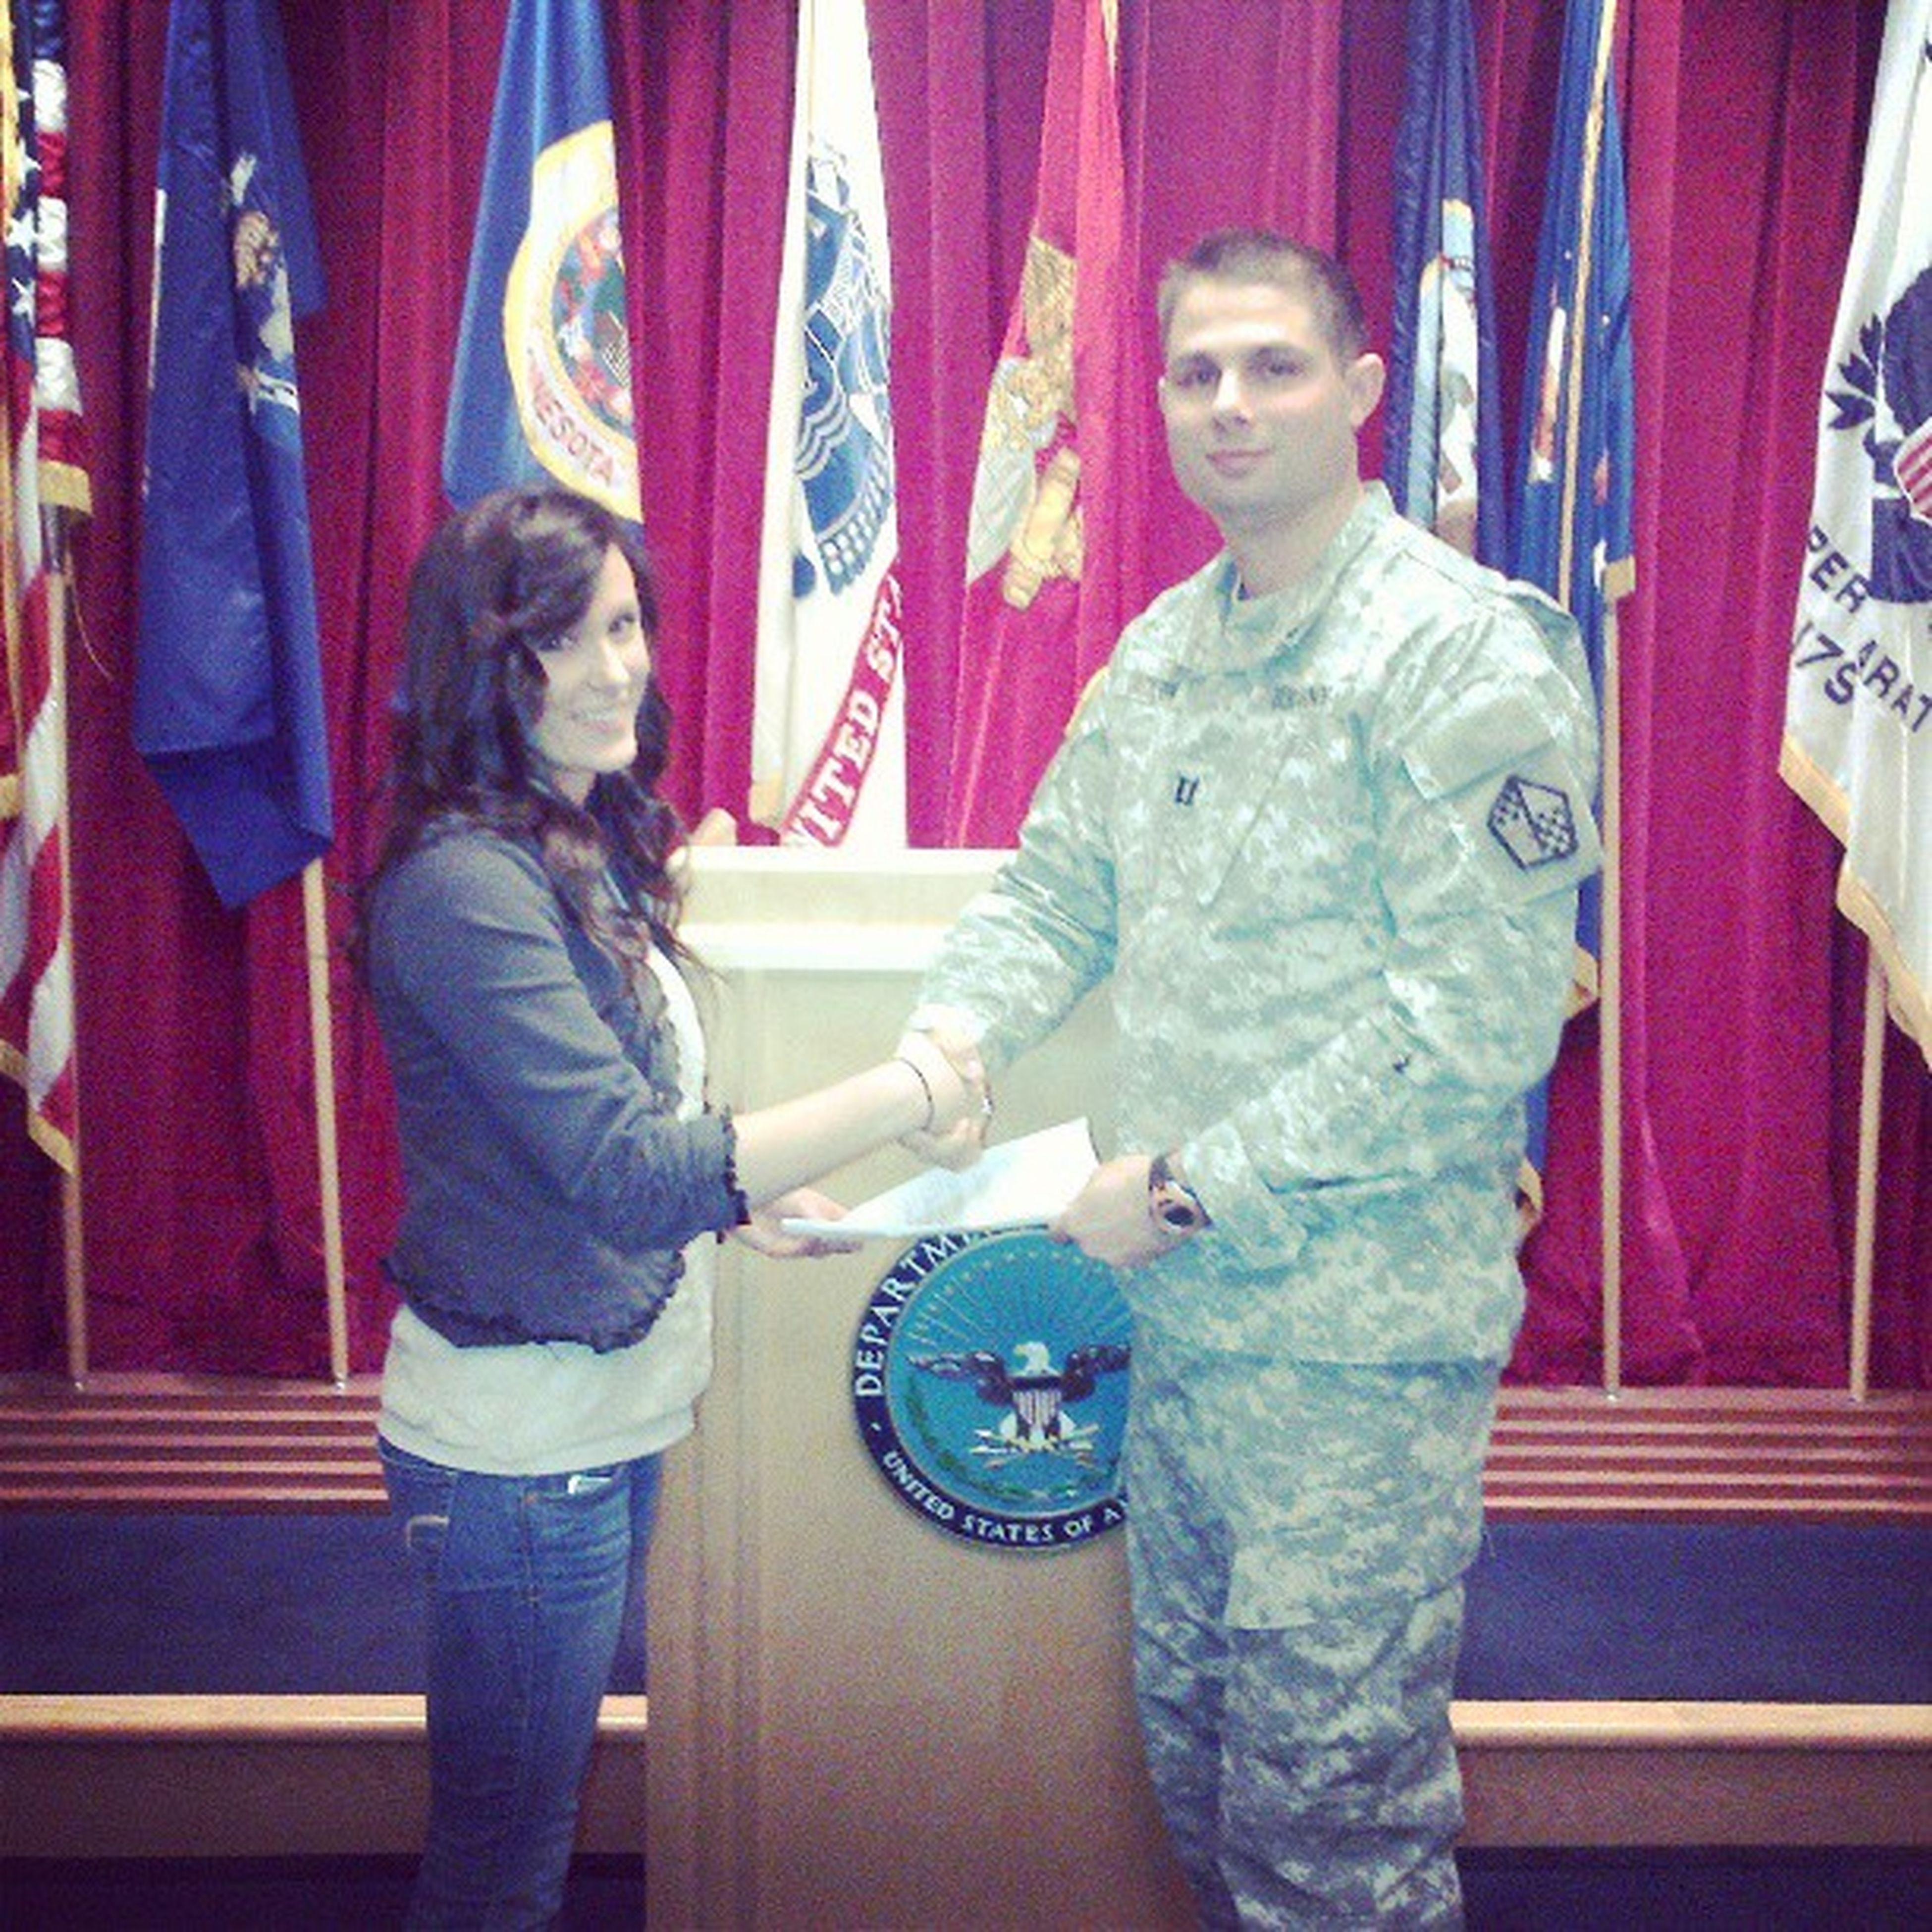 Two months of hurry up and wait and I finally get to swear in. Army Nationalguard Military